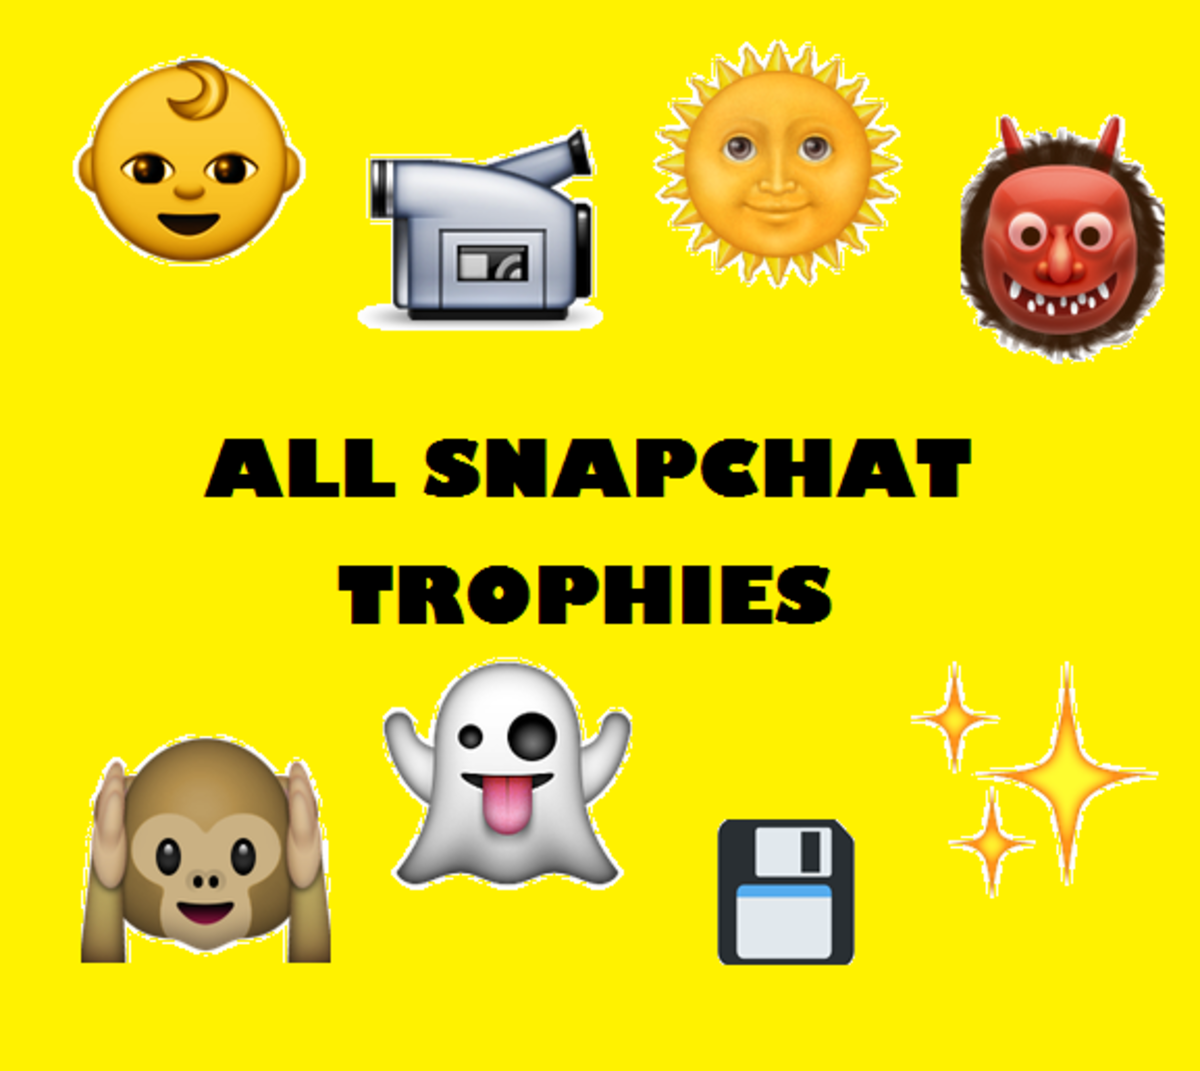 Complete List of Snapchat Trophies and Achievements